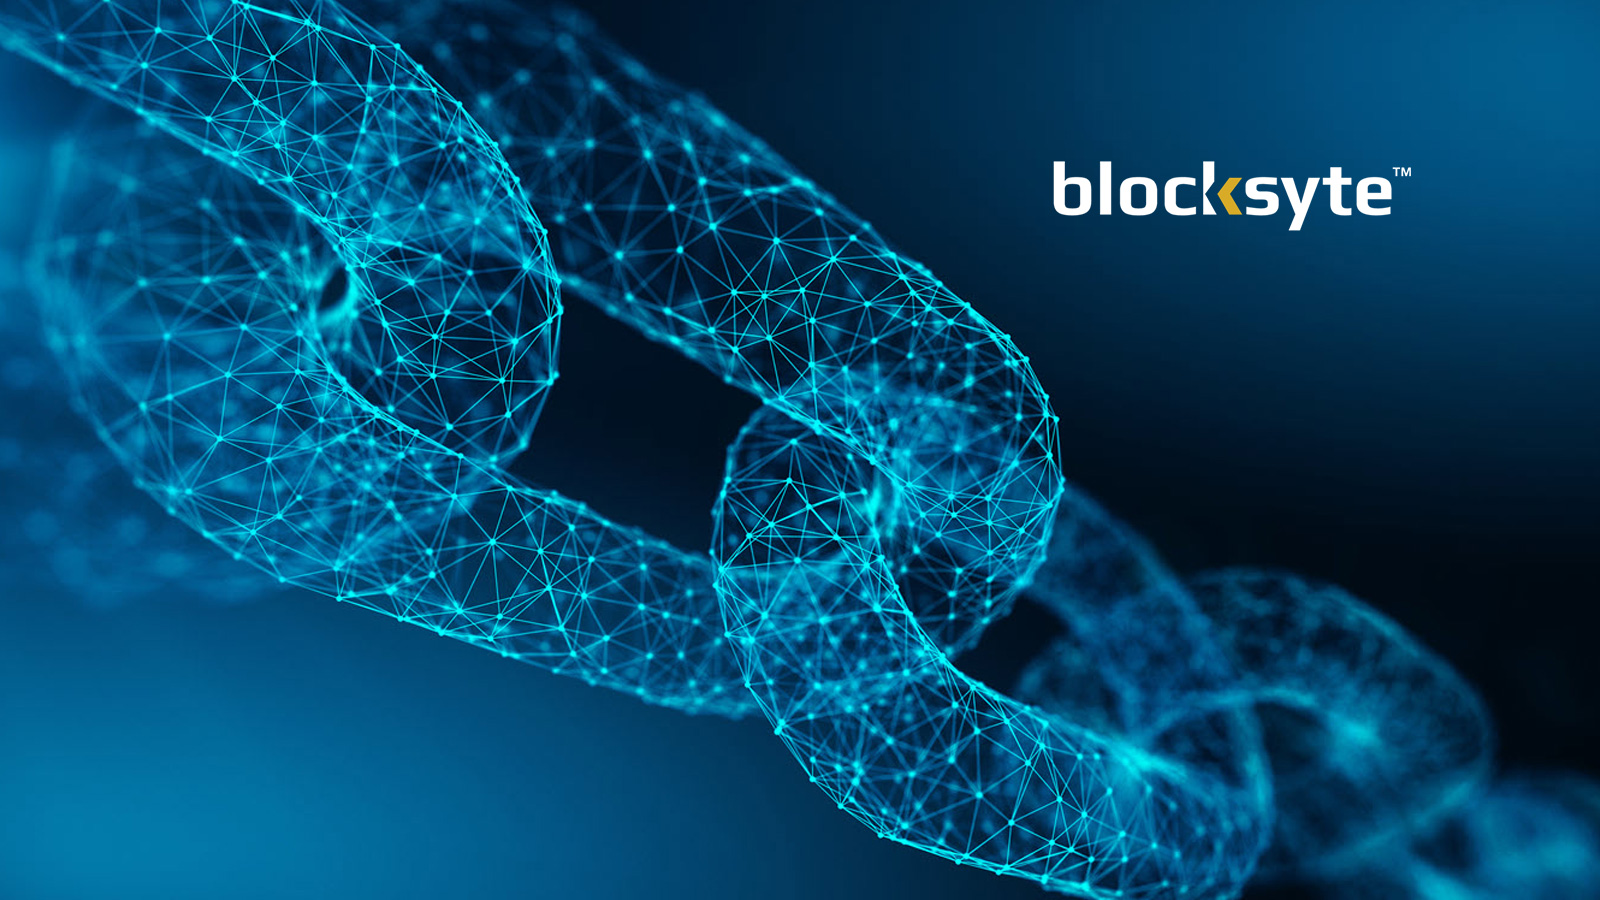 Blocksyte And Caroli Are First To Announce Blockchain Traceability